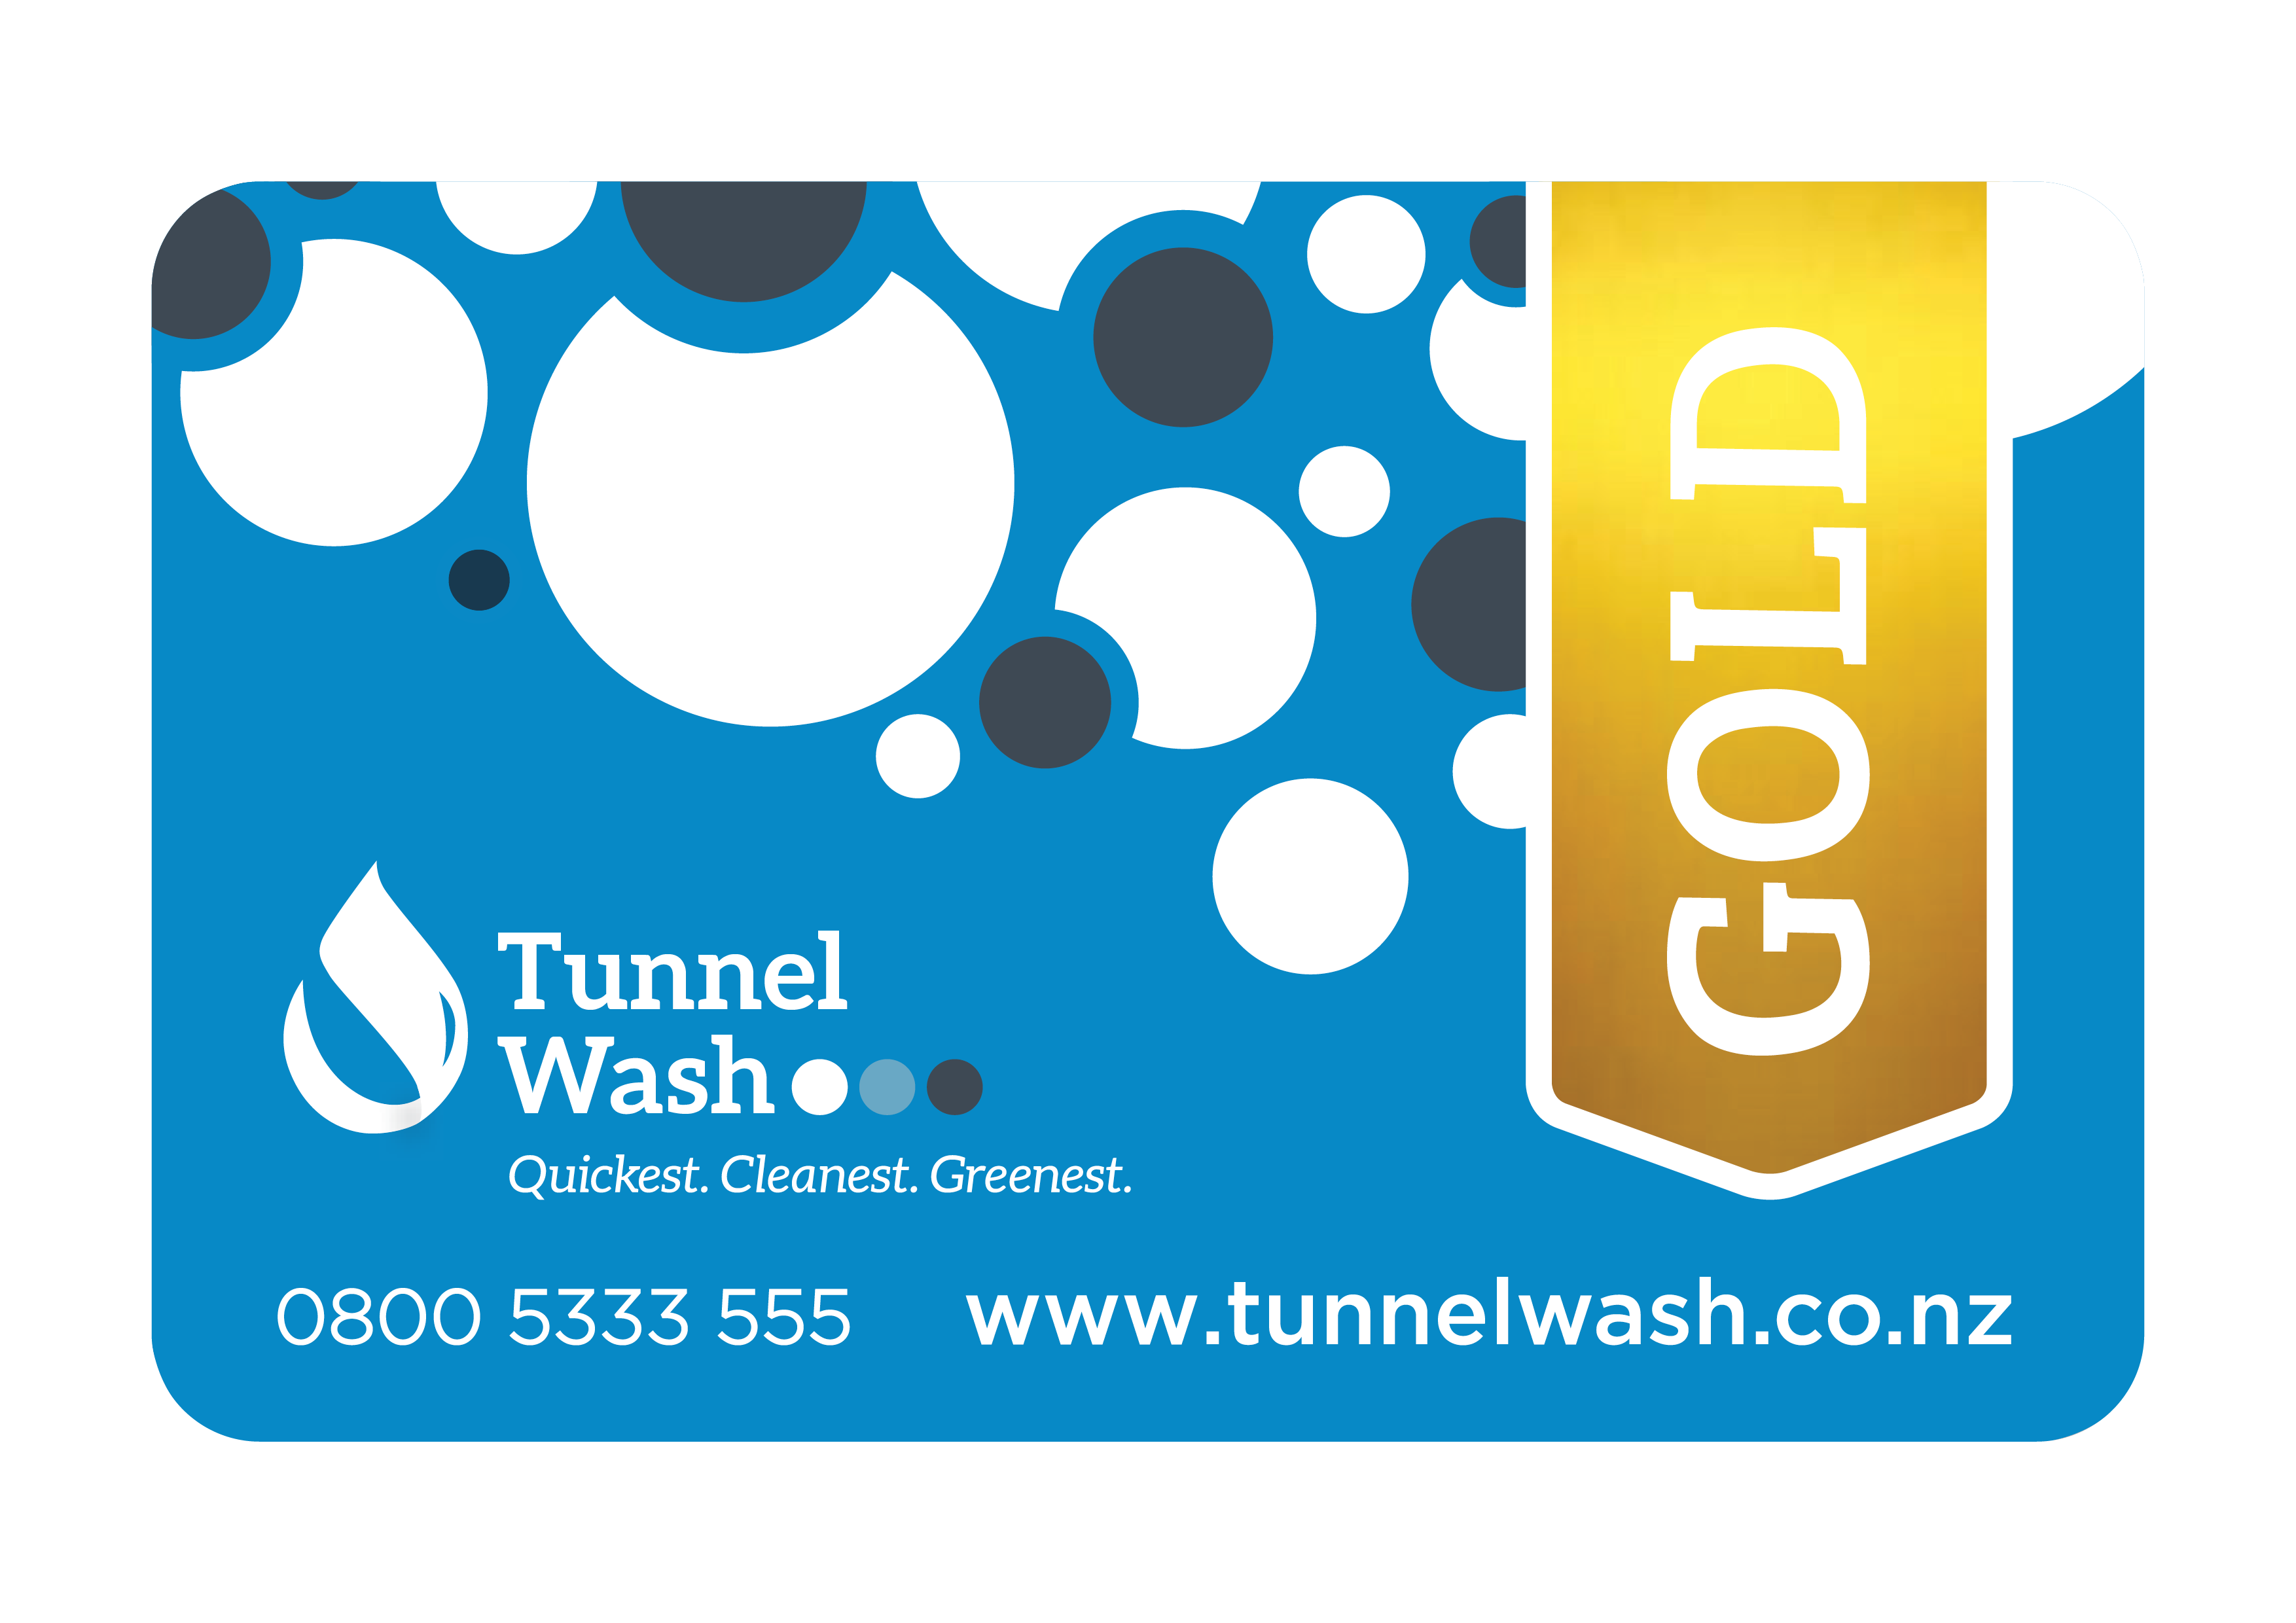 Gold 5 Pack (+ Get One Wash FREE)